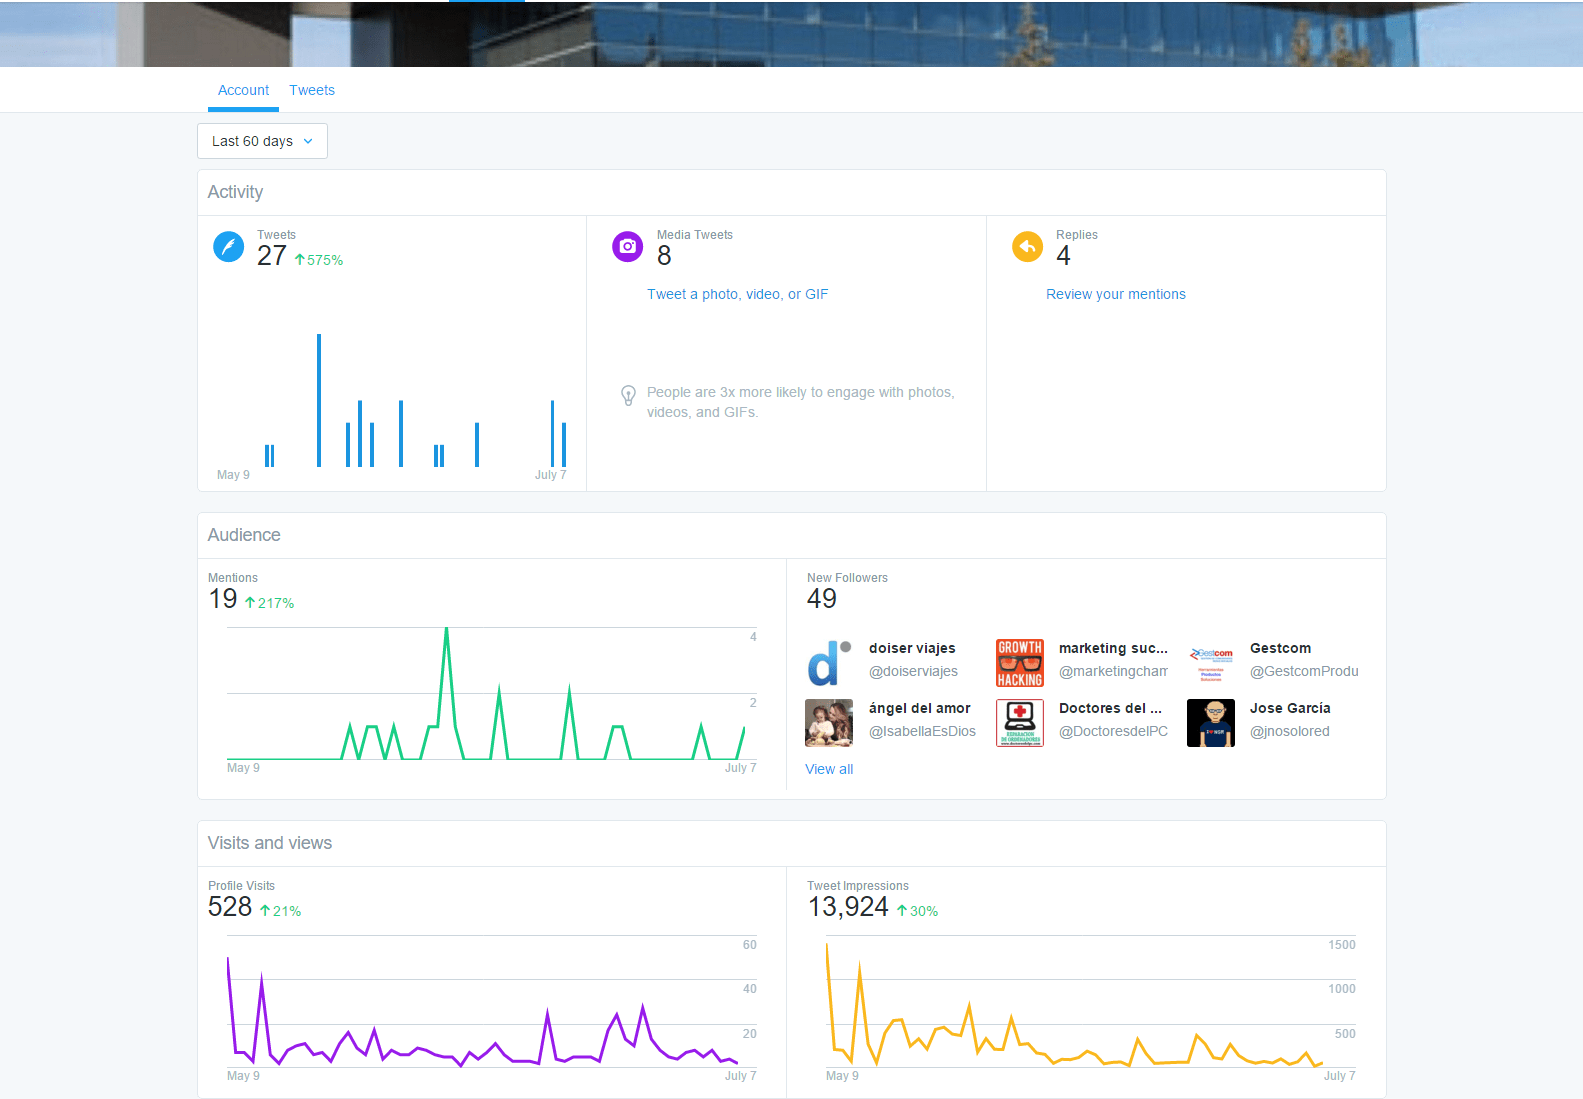 FireShot Capture 10 - Twitter Dashboard - https___dashboard.twitter.com_i_analytics_account